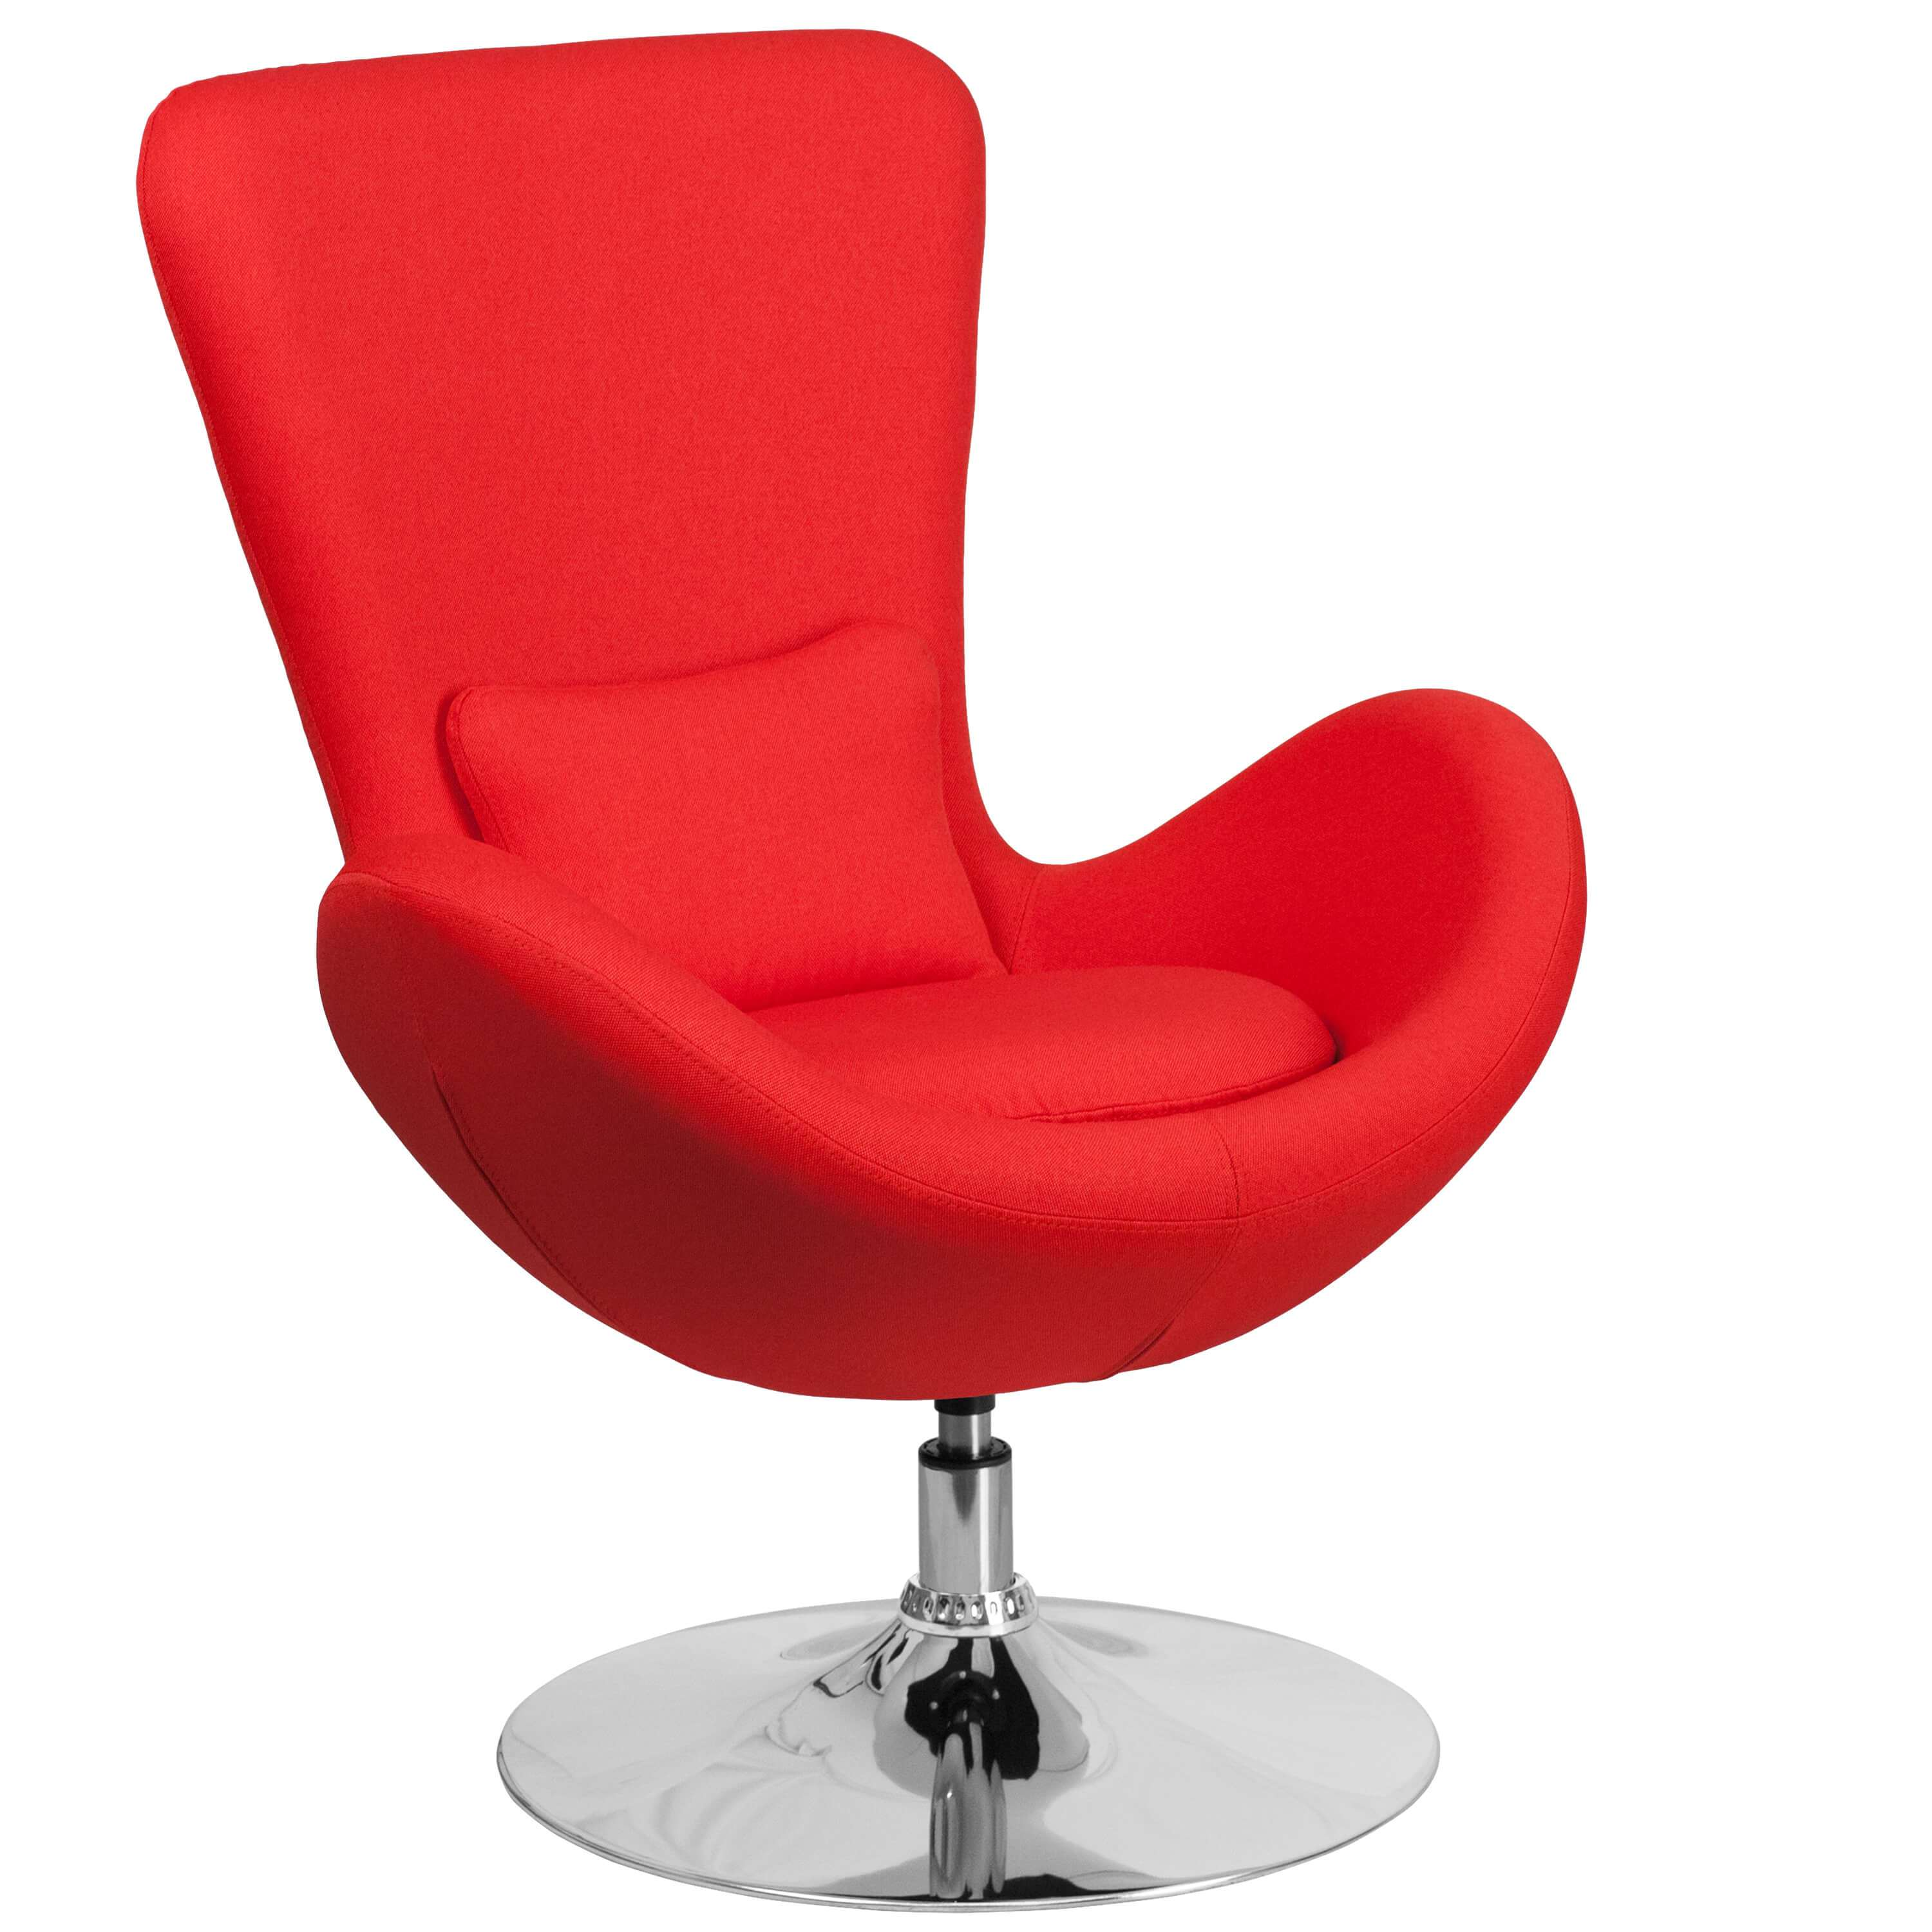 Office lounge chairs CUB CH 162430 RED FAB GG FLA